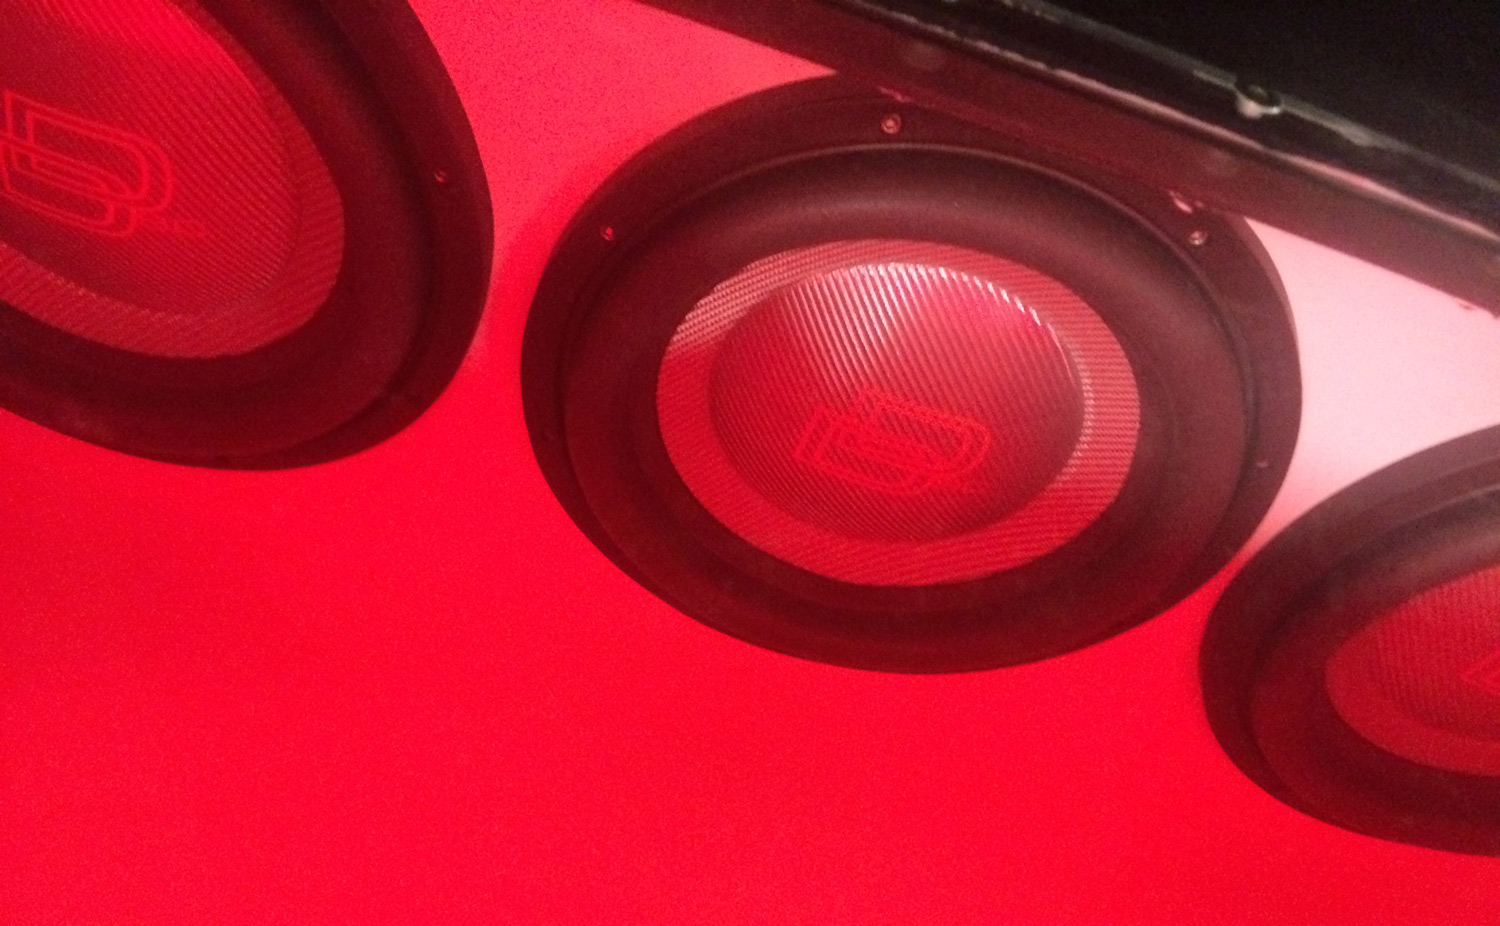 GMC Sierra Subwoofers Up Close